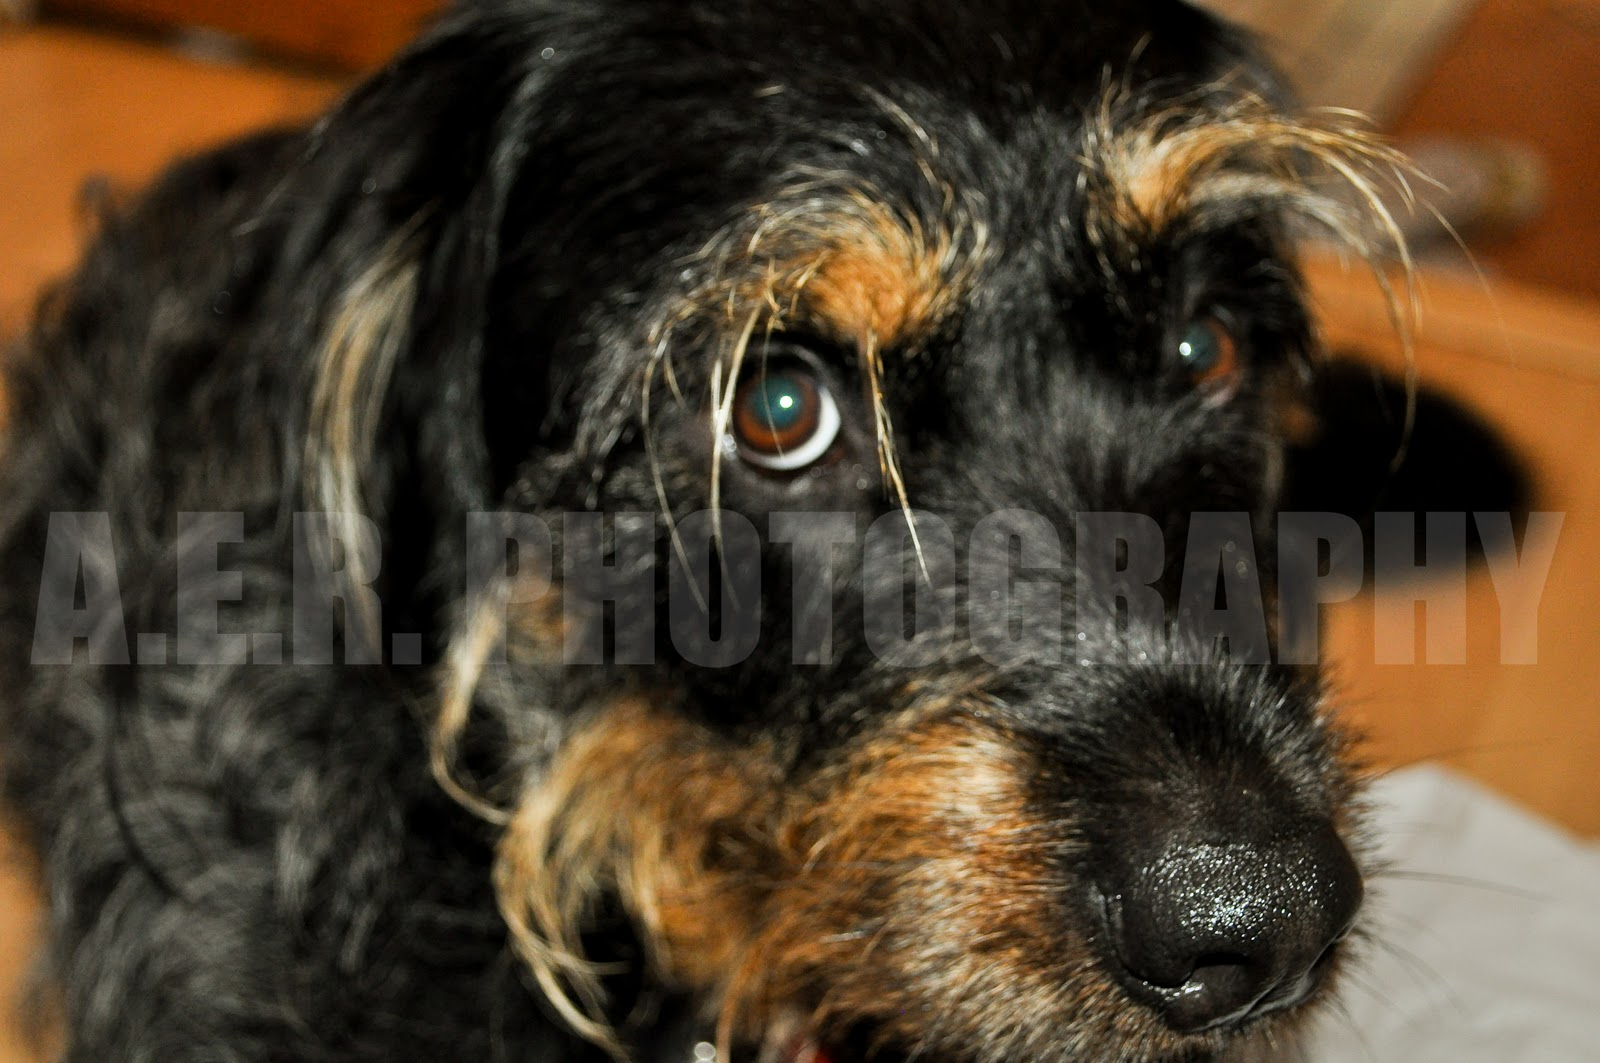 Minute Details Supposidly A Rottweiler